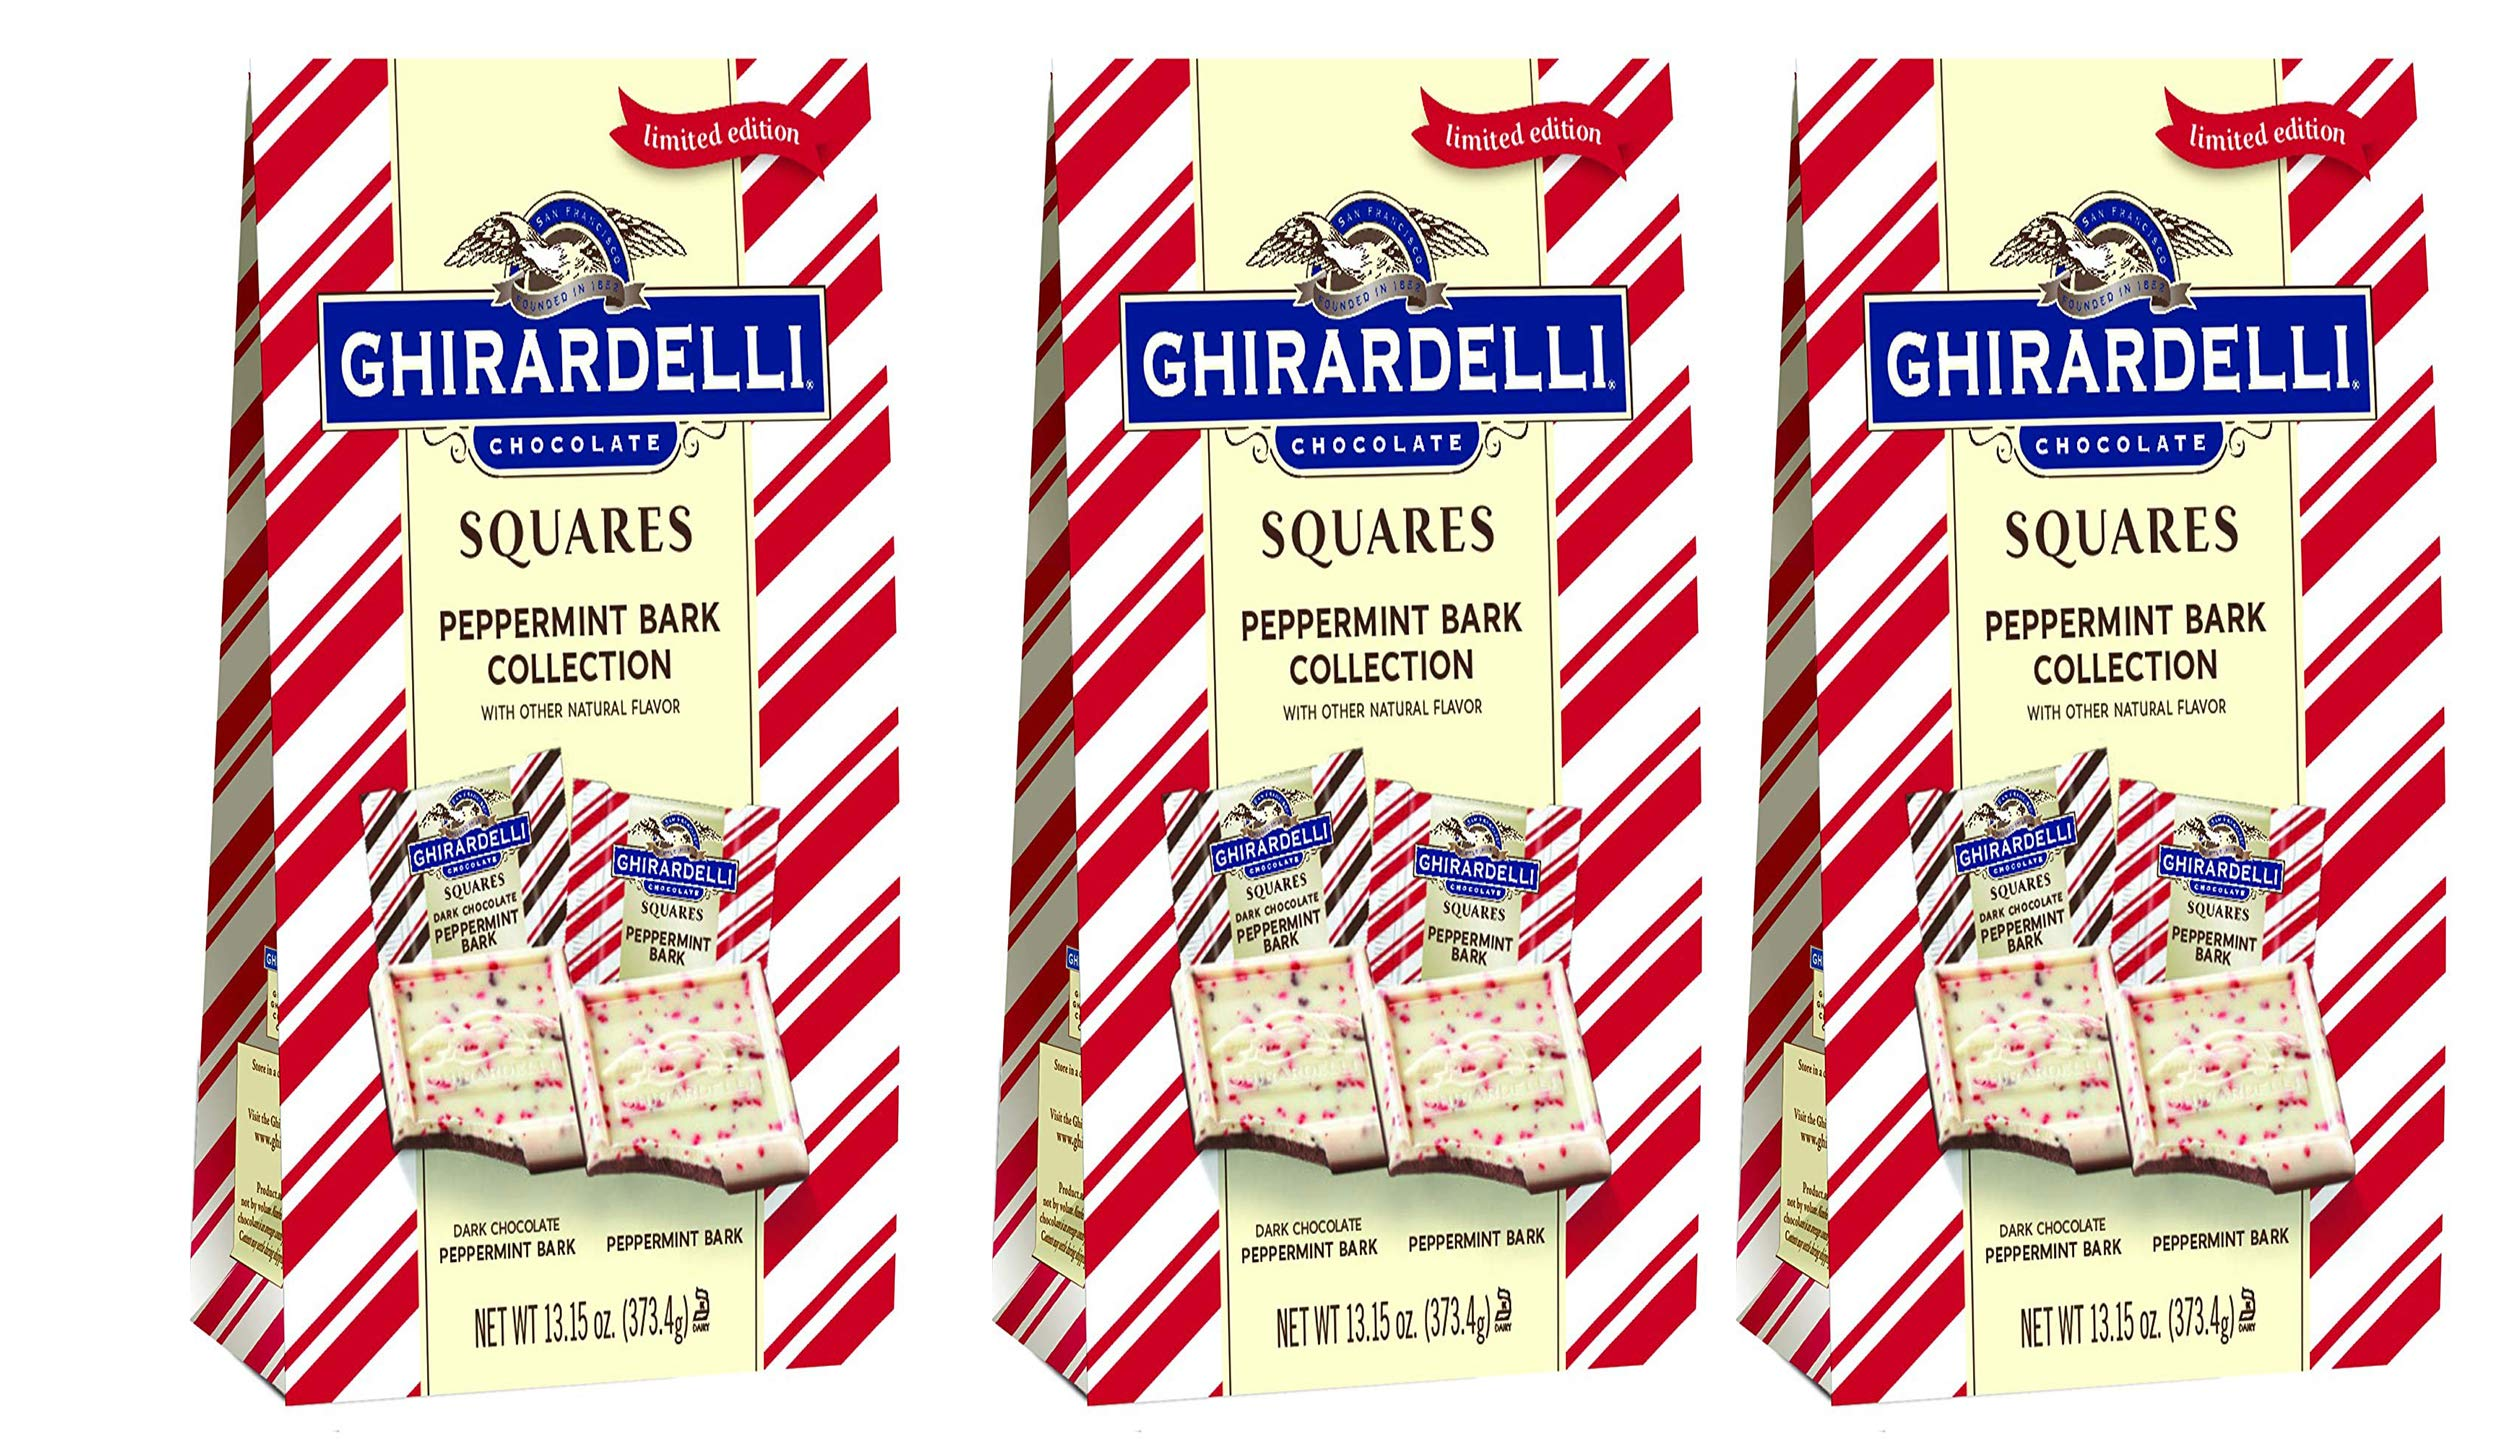 Ghirardelli Limited Edition Peppermint Bark Squares (3-Pack) by Ghirardelli